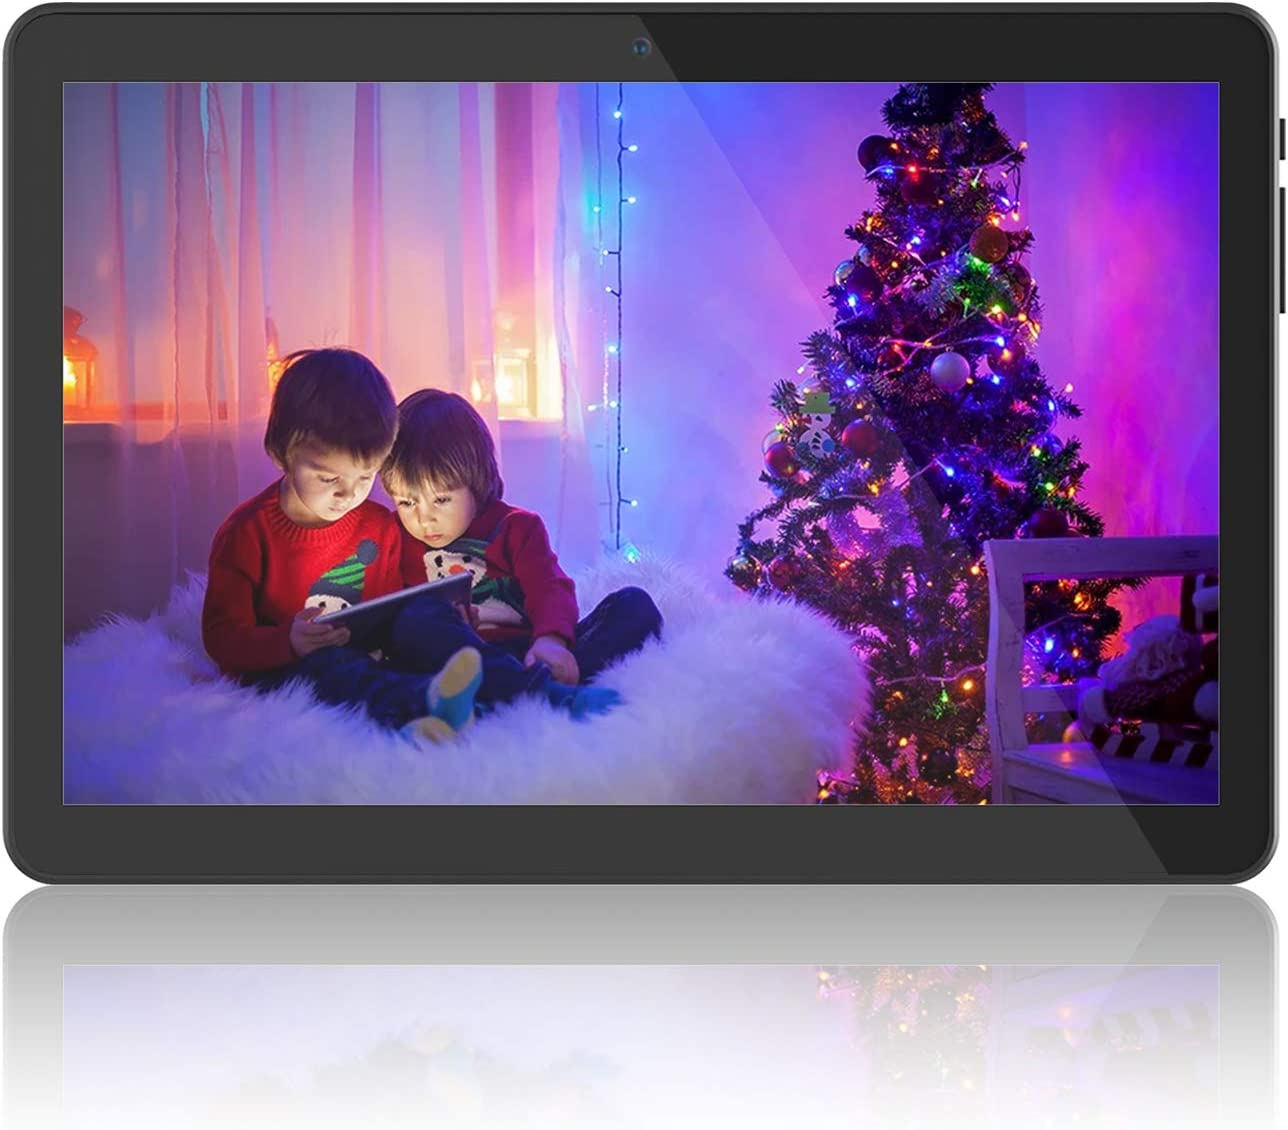 """Tablet 10 inch Android 8.1 Go, 10.1"""" 5G WiFi Tablets,6000mAh Battery,Quad-Core Processor, 800x1280 Touch Screen Full HD Display,16GB Storage, Bluetooth,Black"""